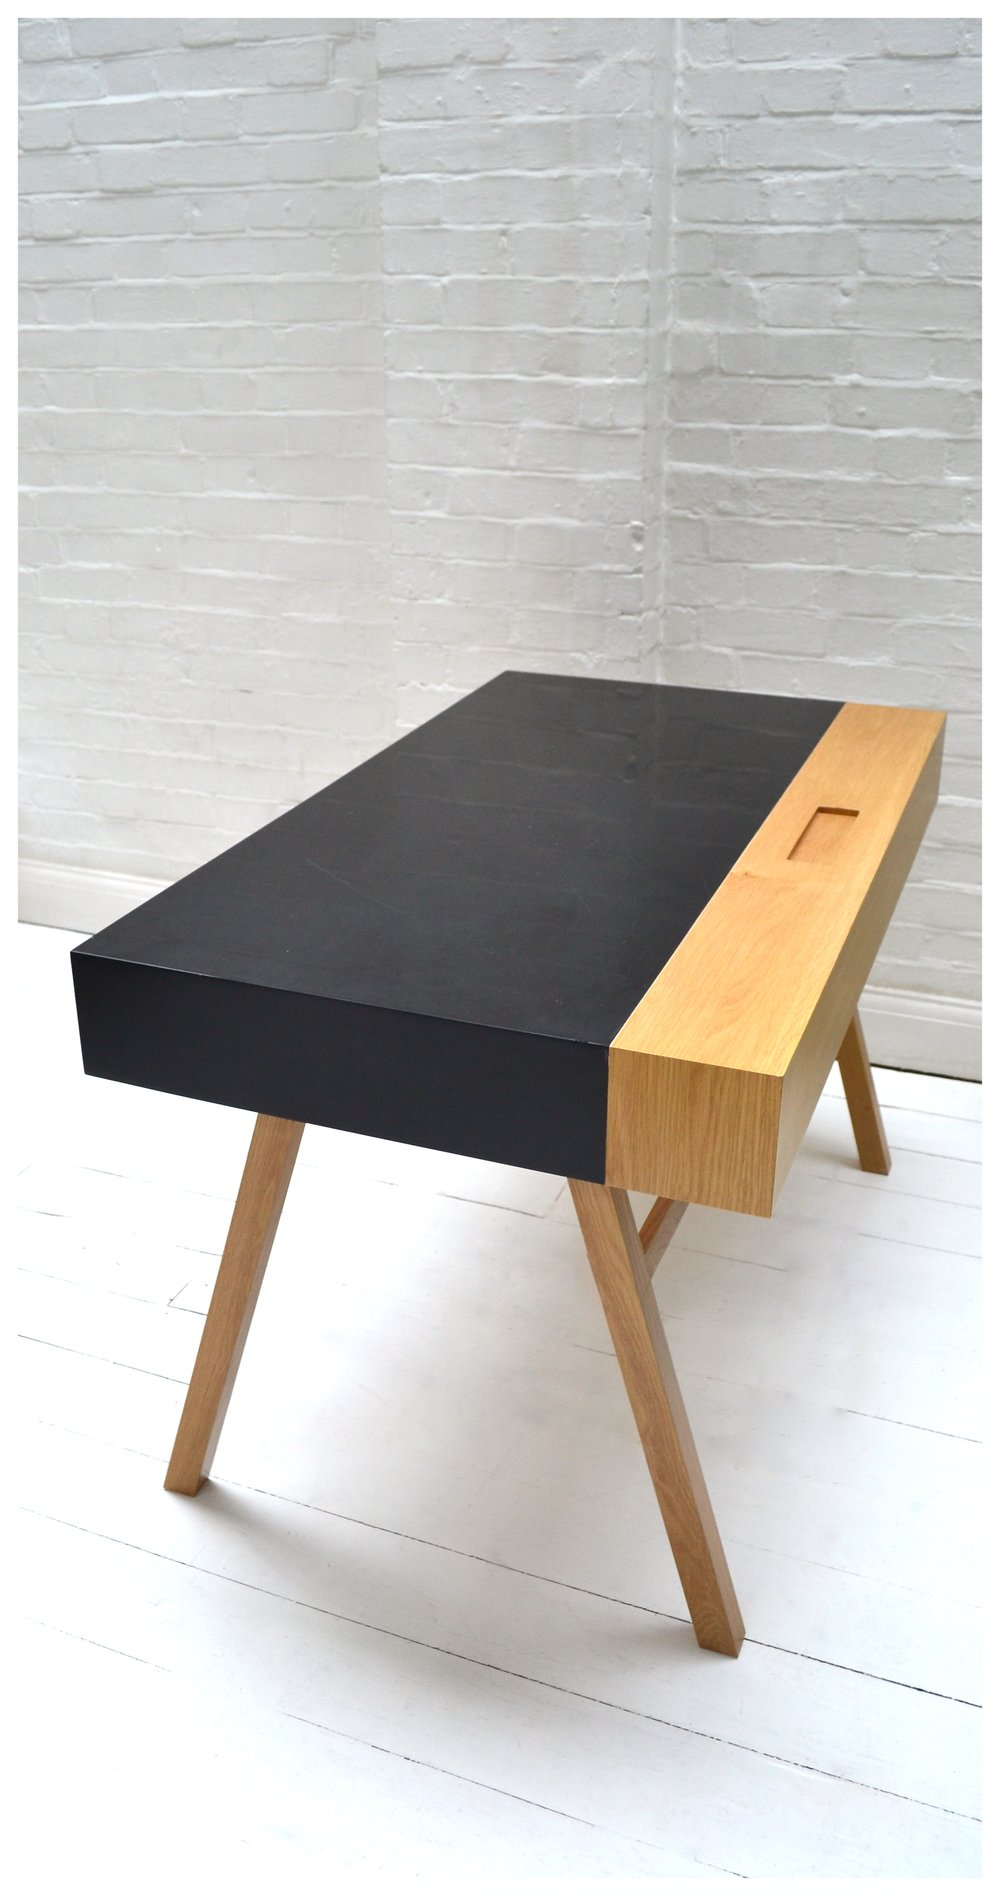 blackcorian_writingdesk.jpg